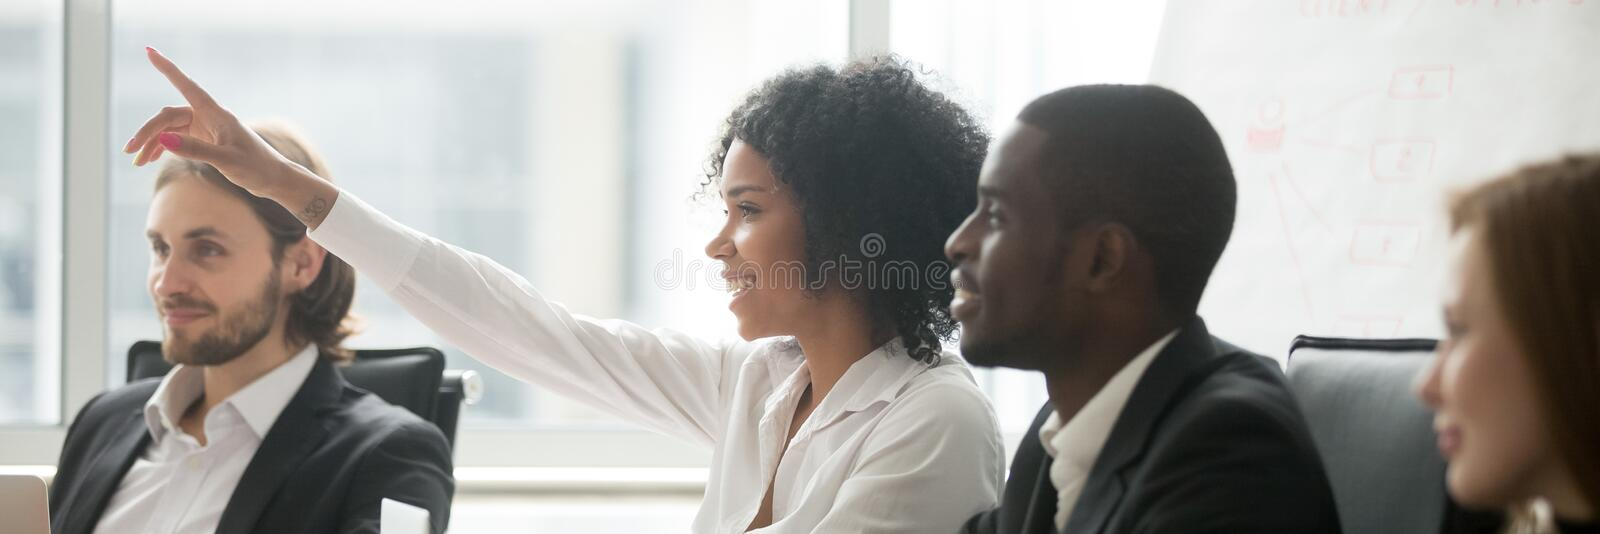 African woman raise hand ask question during seminar at boardroom royalty free stock photos